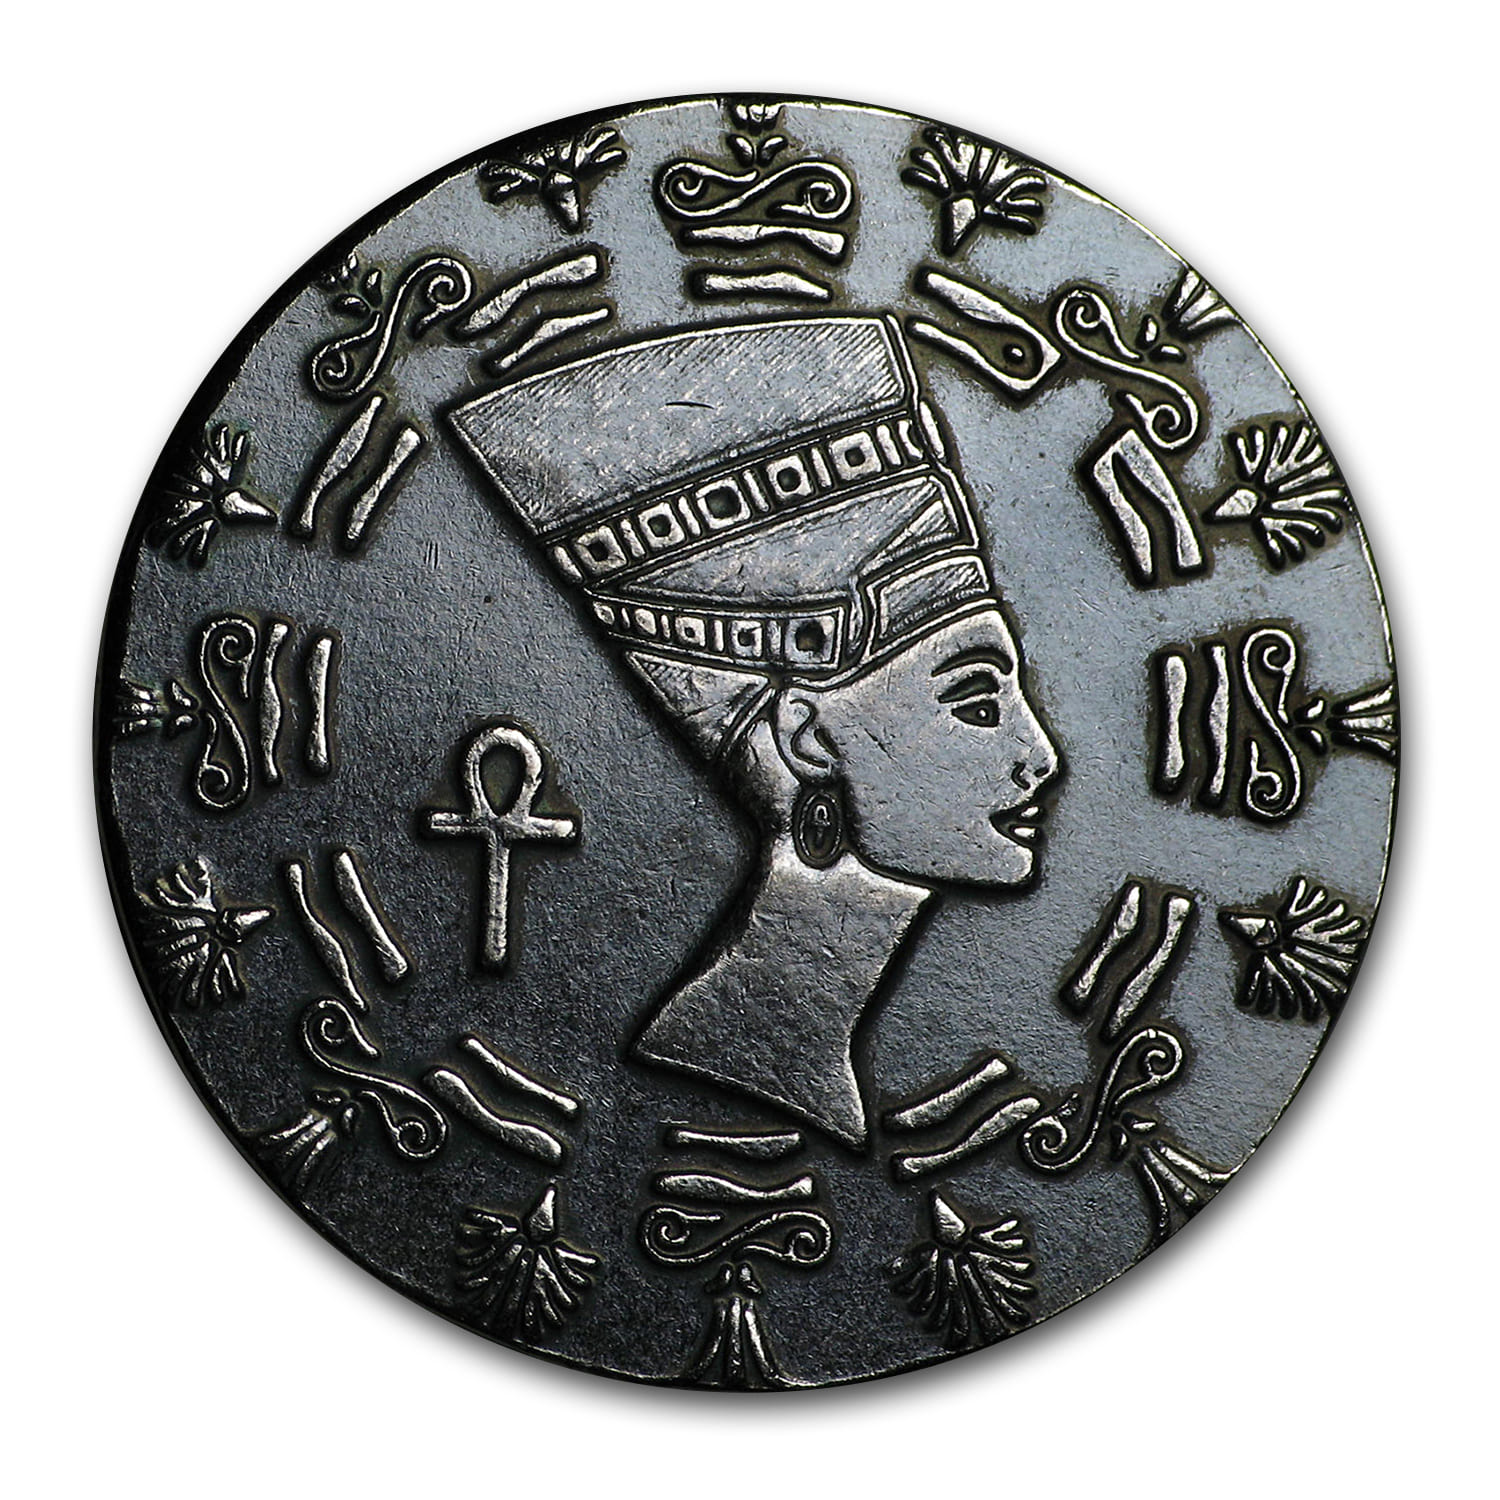 1/10 oz Silver Round - Monarch Precious Metals (Queen Nefertiti)